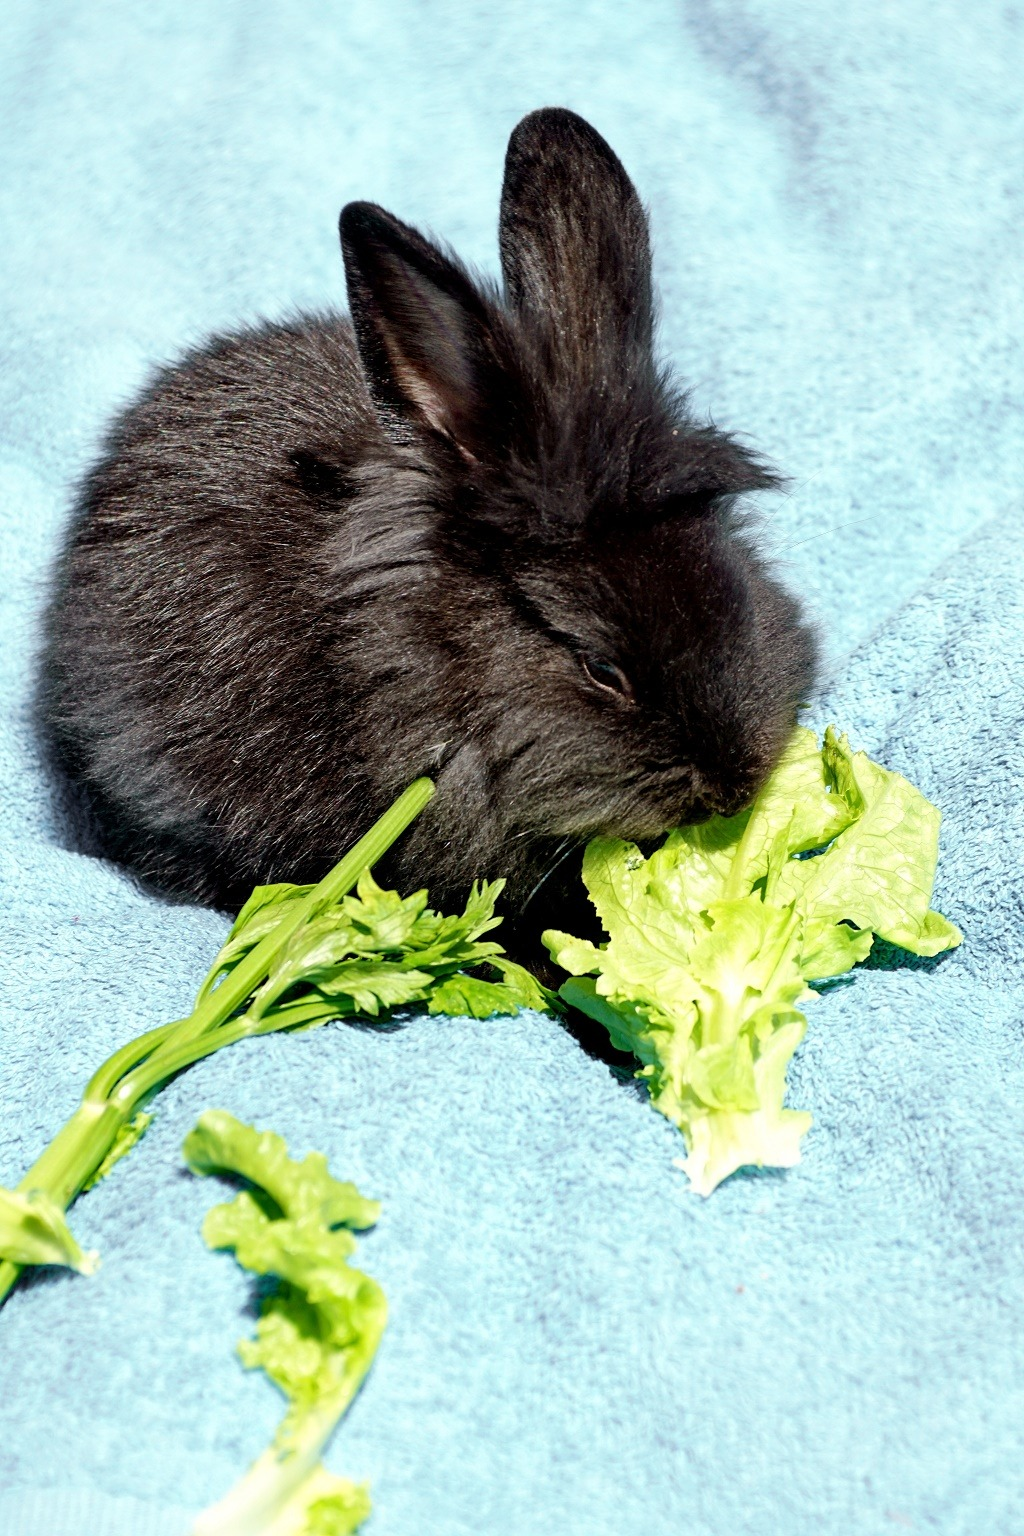 rabbit eating celery